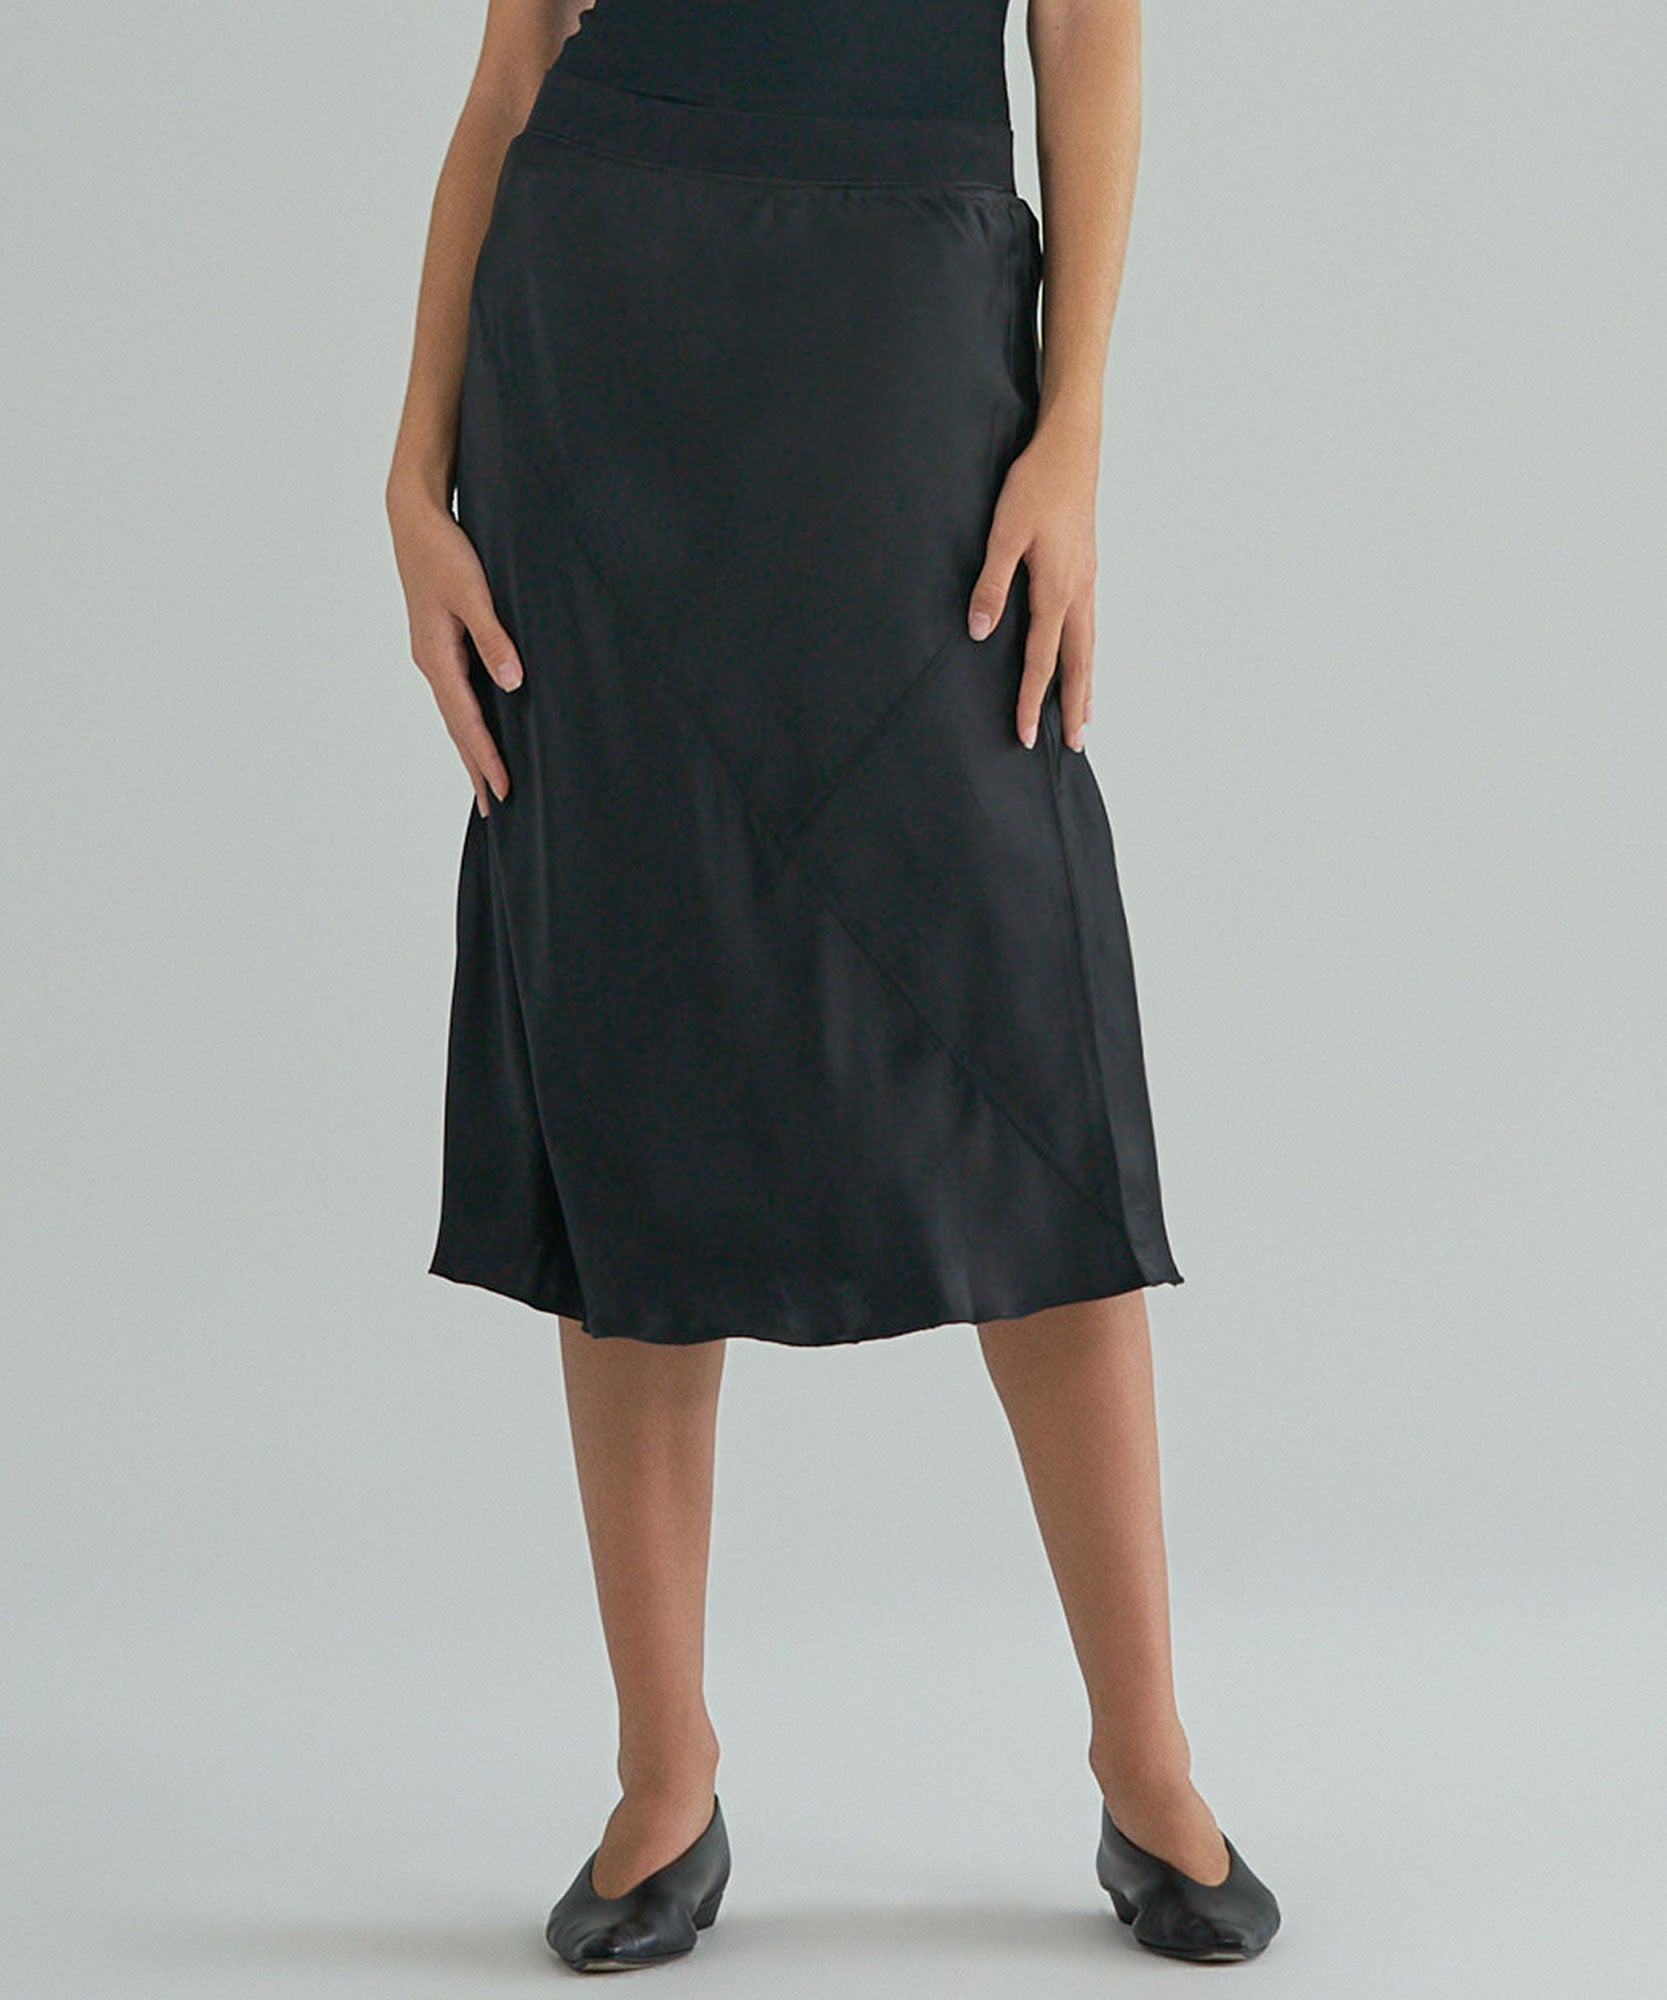 Black Silk Pull-On Skirt - Women's Silk Skirt by ATM Anthony Thomas Melillo